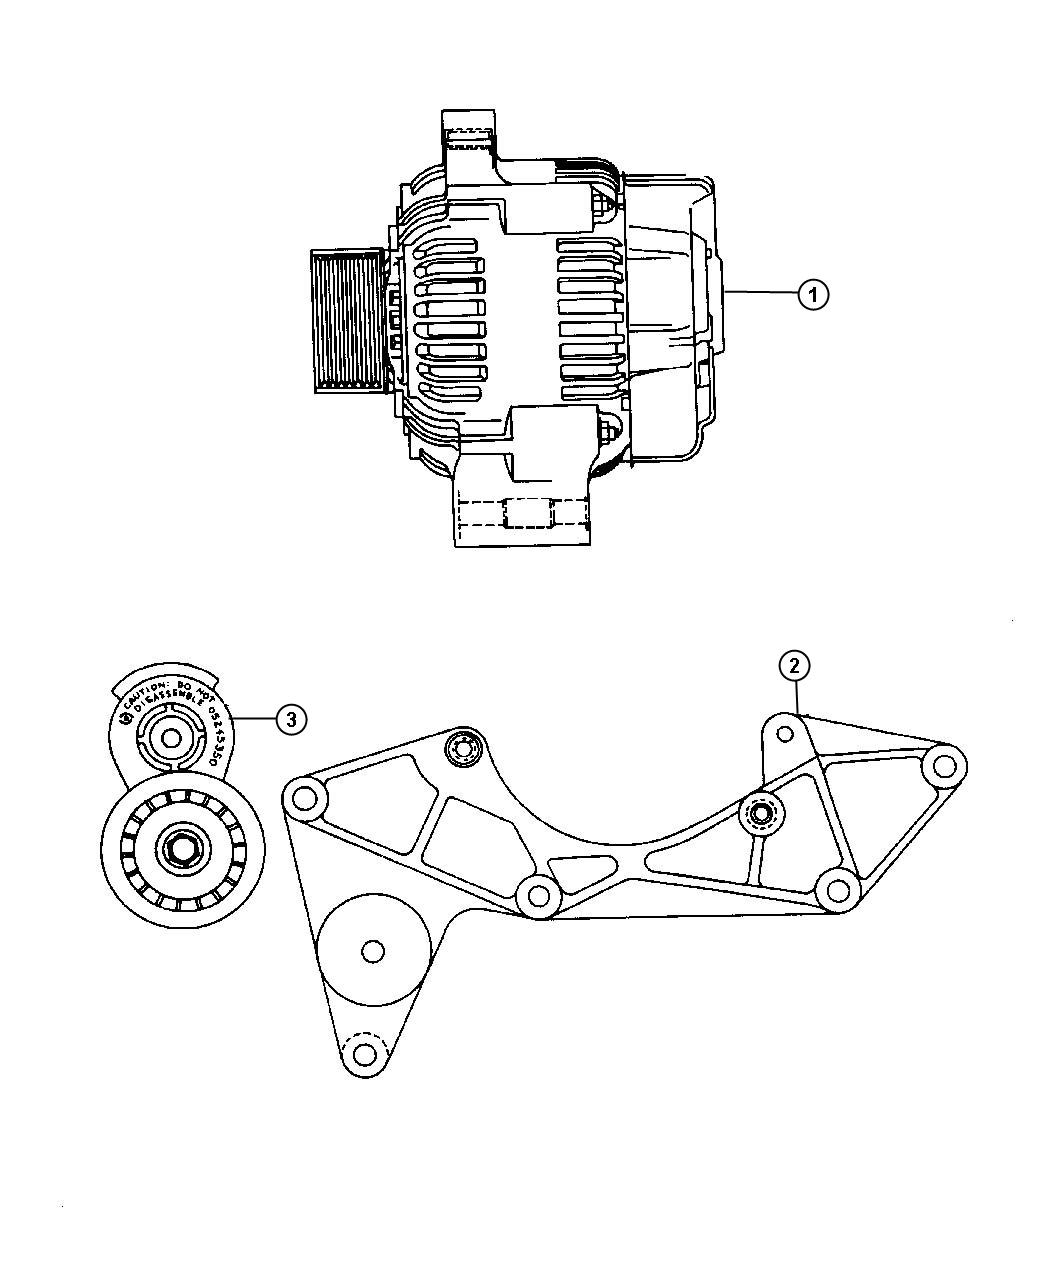 93 Dodge Mins Alternator Wire Diagram. Dodge. Auto Wiring